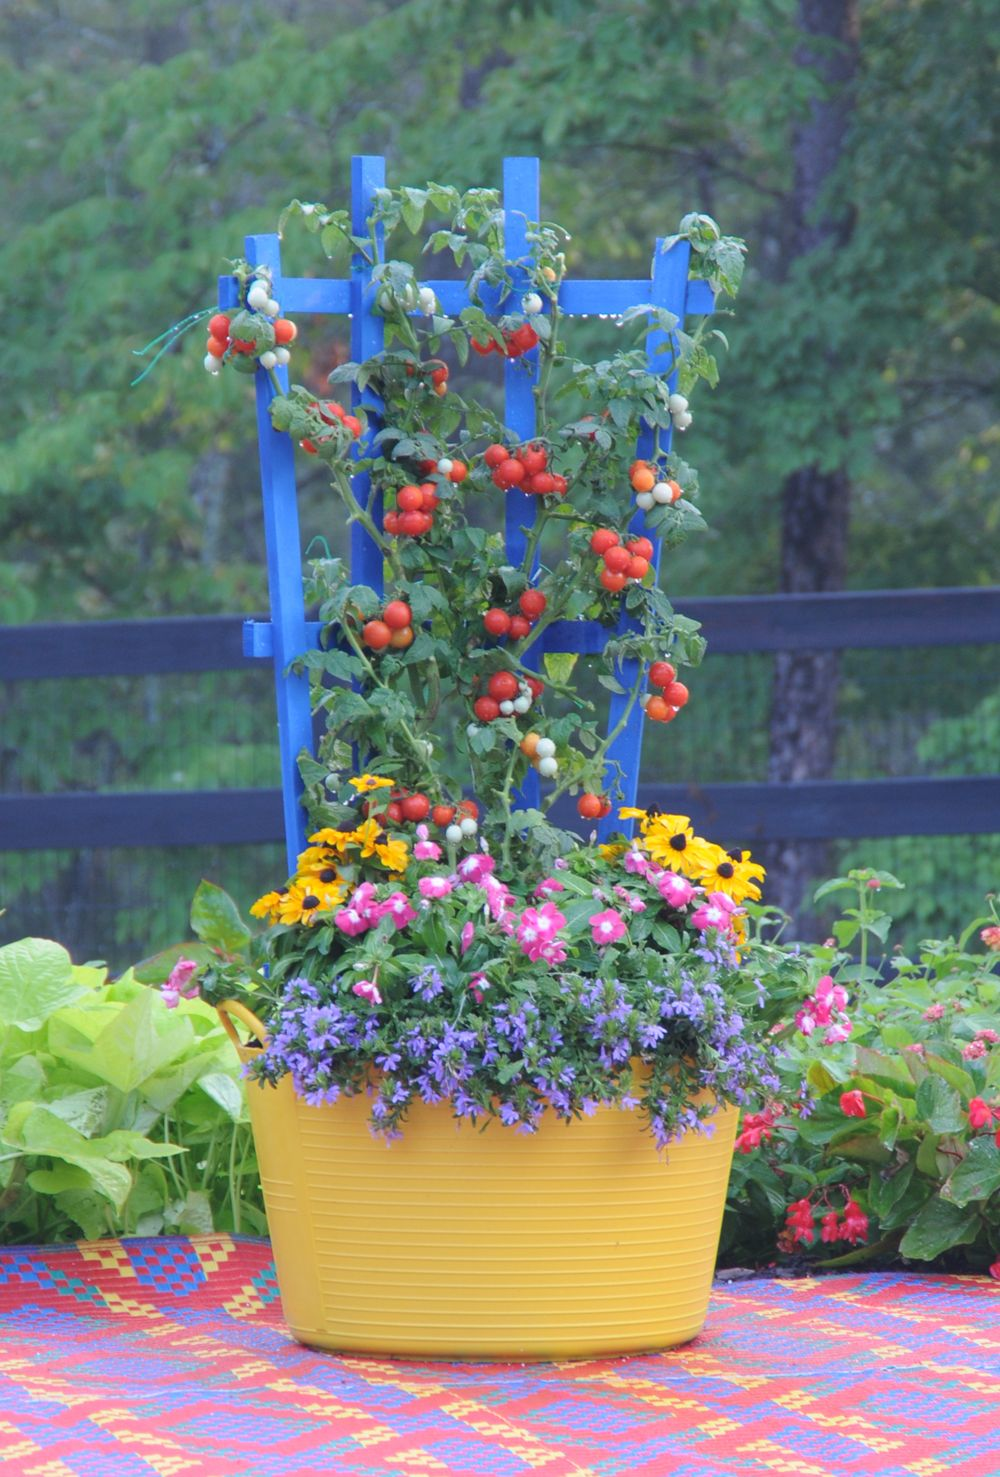 U0027Husky Cherry Redu0027 Tomatoes Form The Centerpiece Of This Trug And Trellis  (www